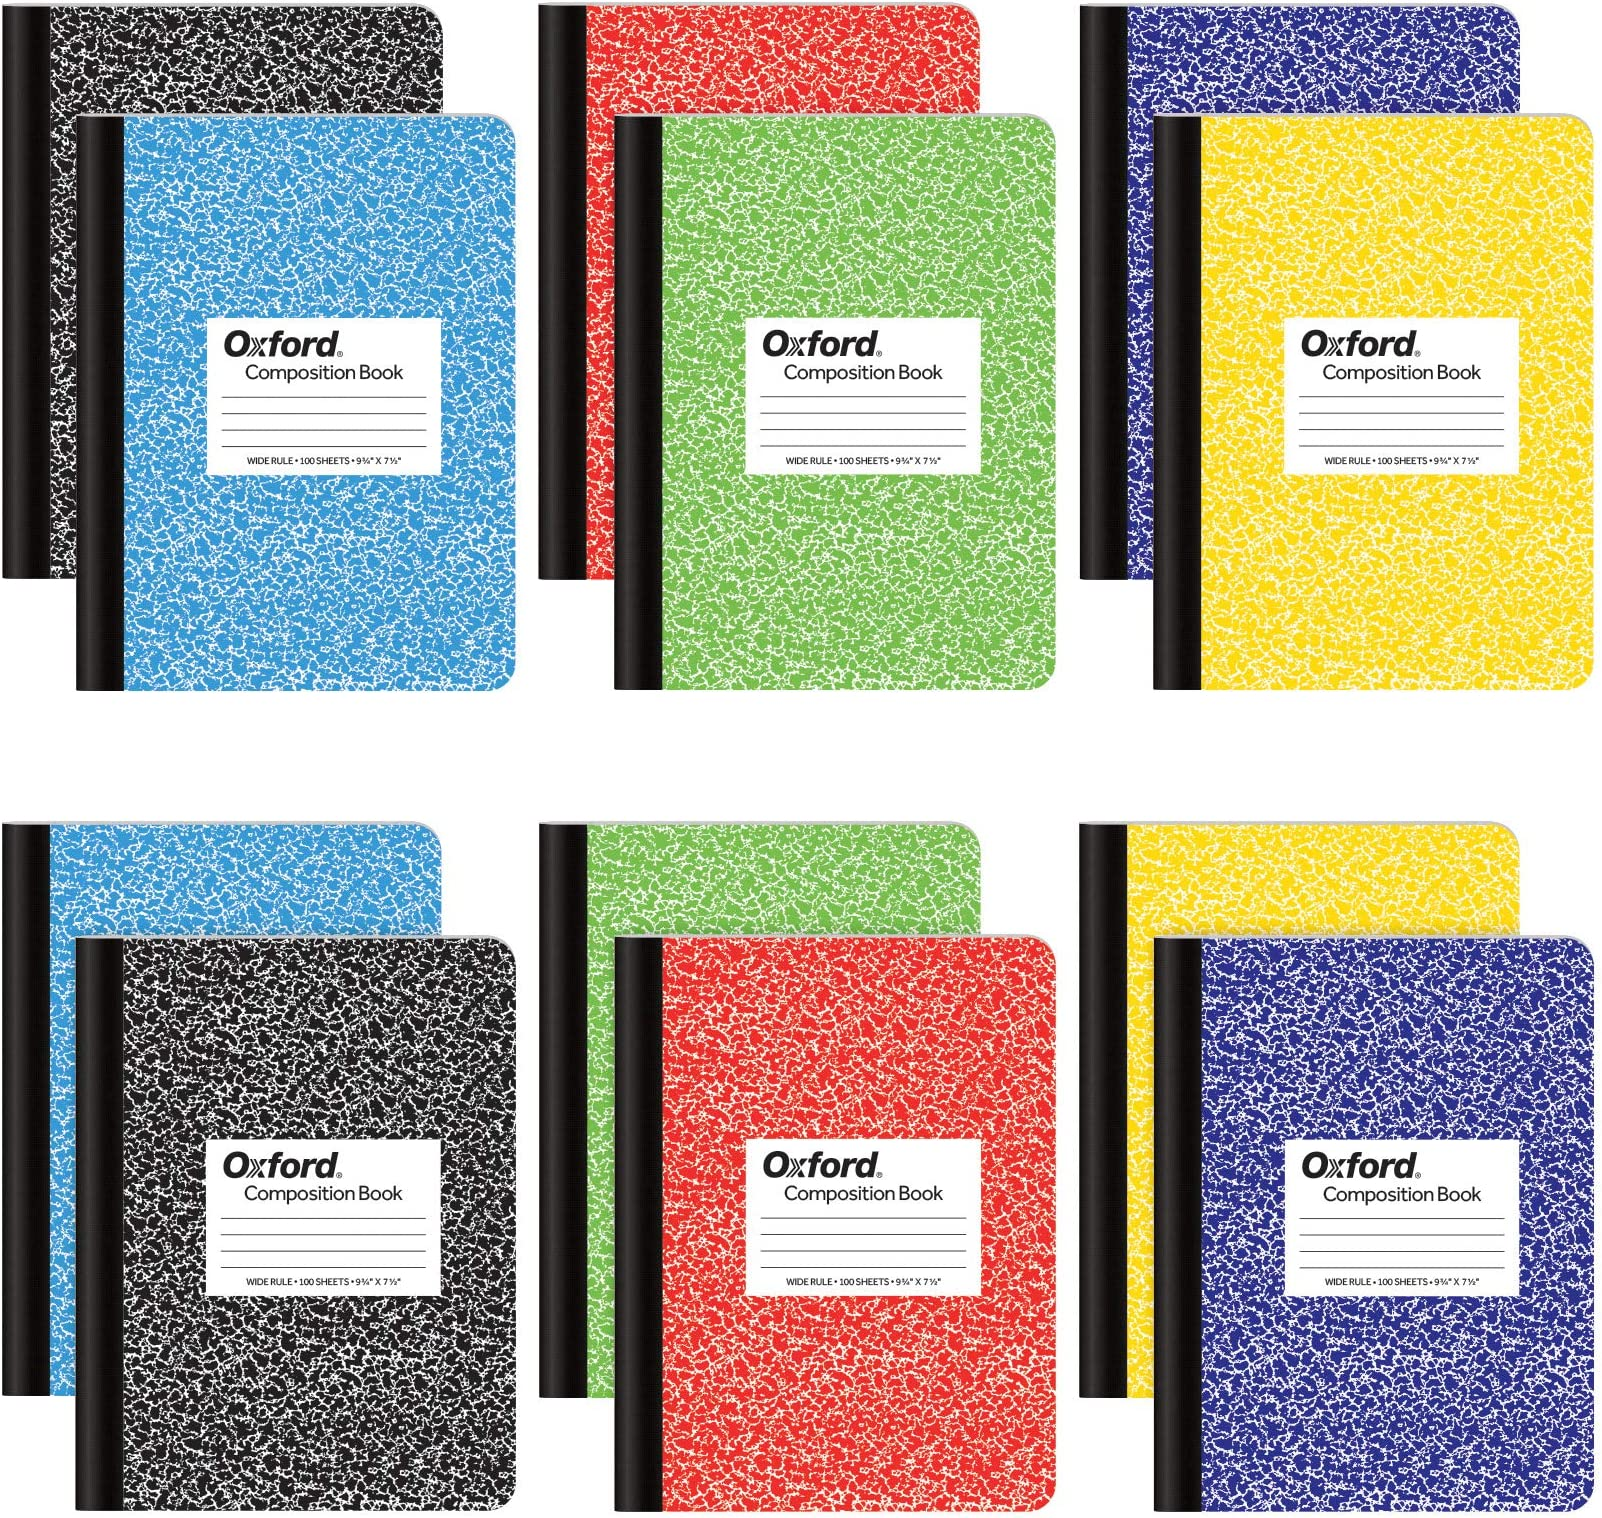 5 Pack Staples Assorted Colors Composition Book 9 /¾ in X 7 /½ in